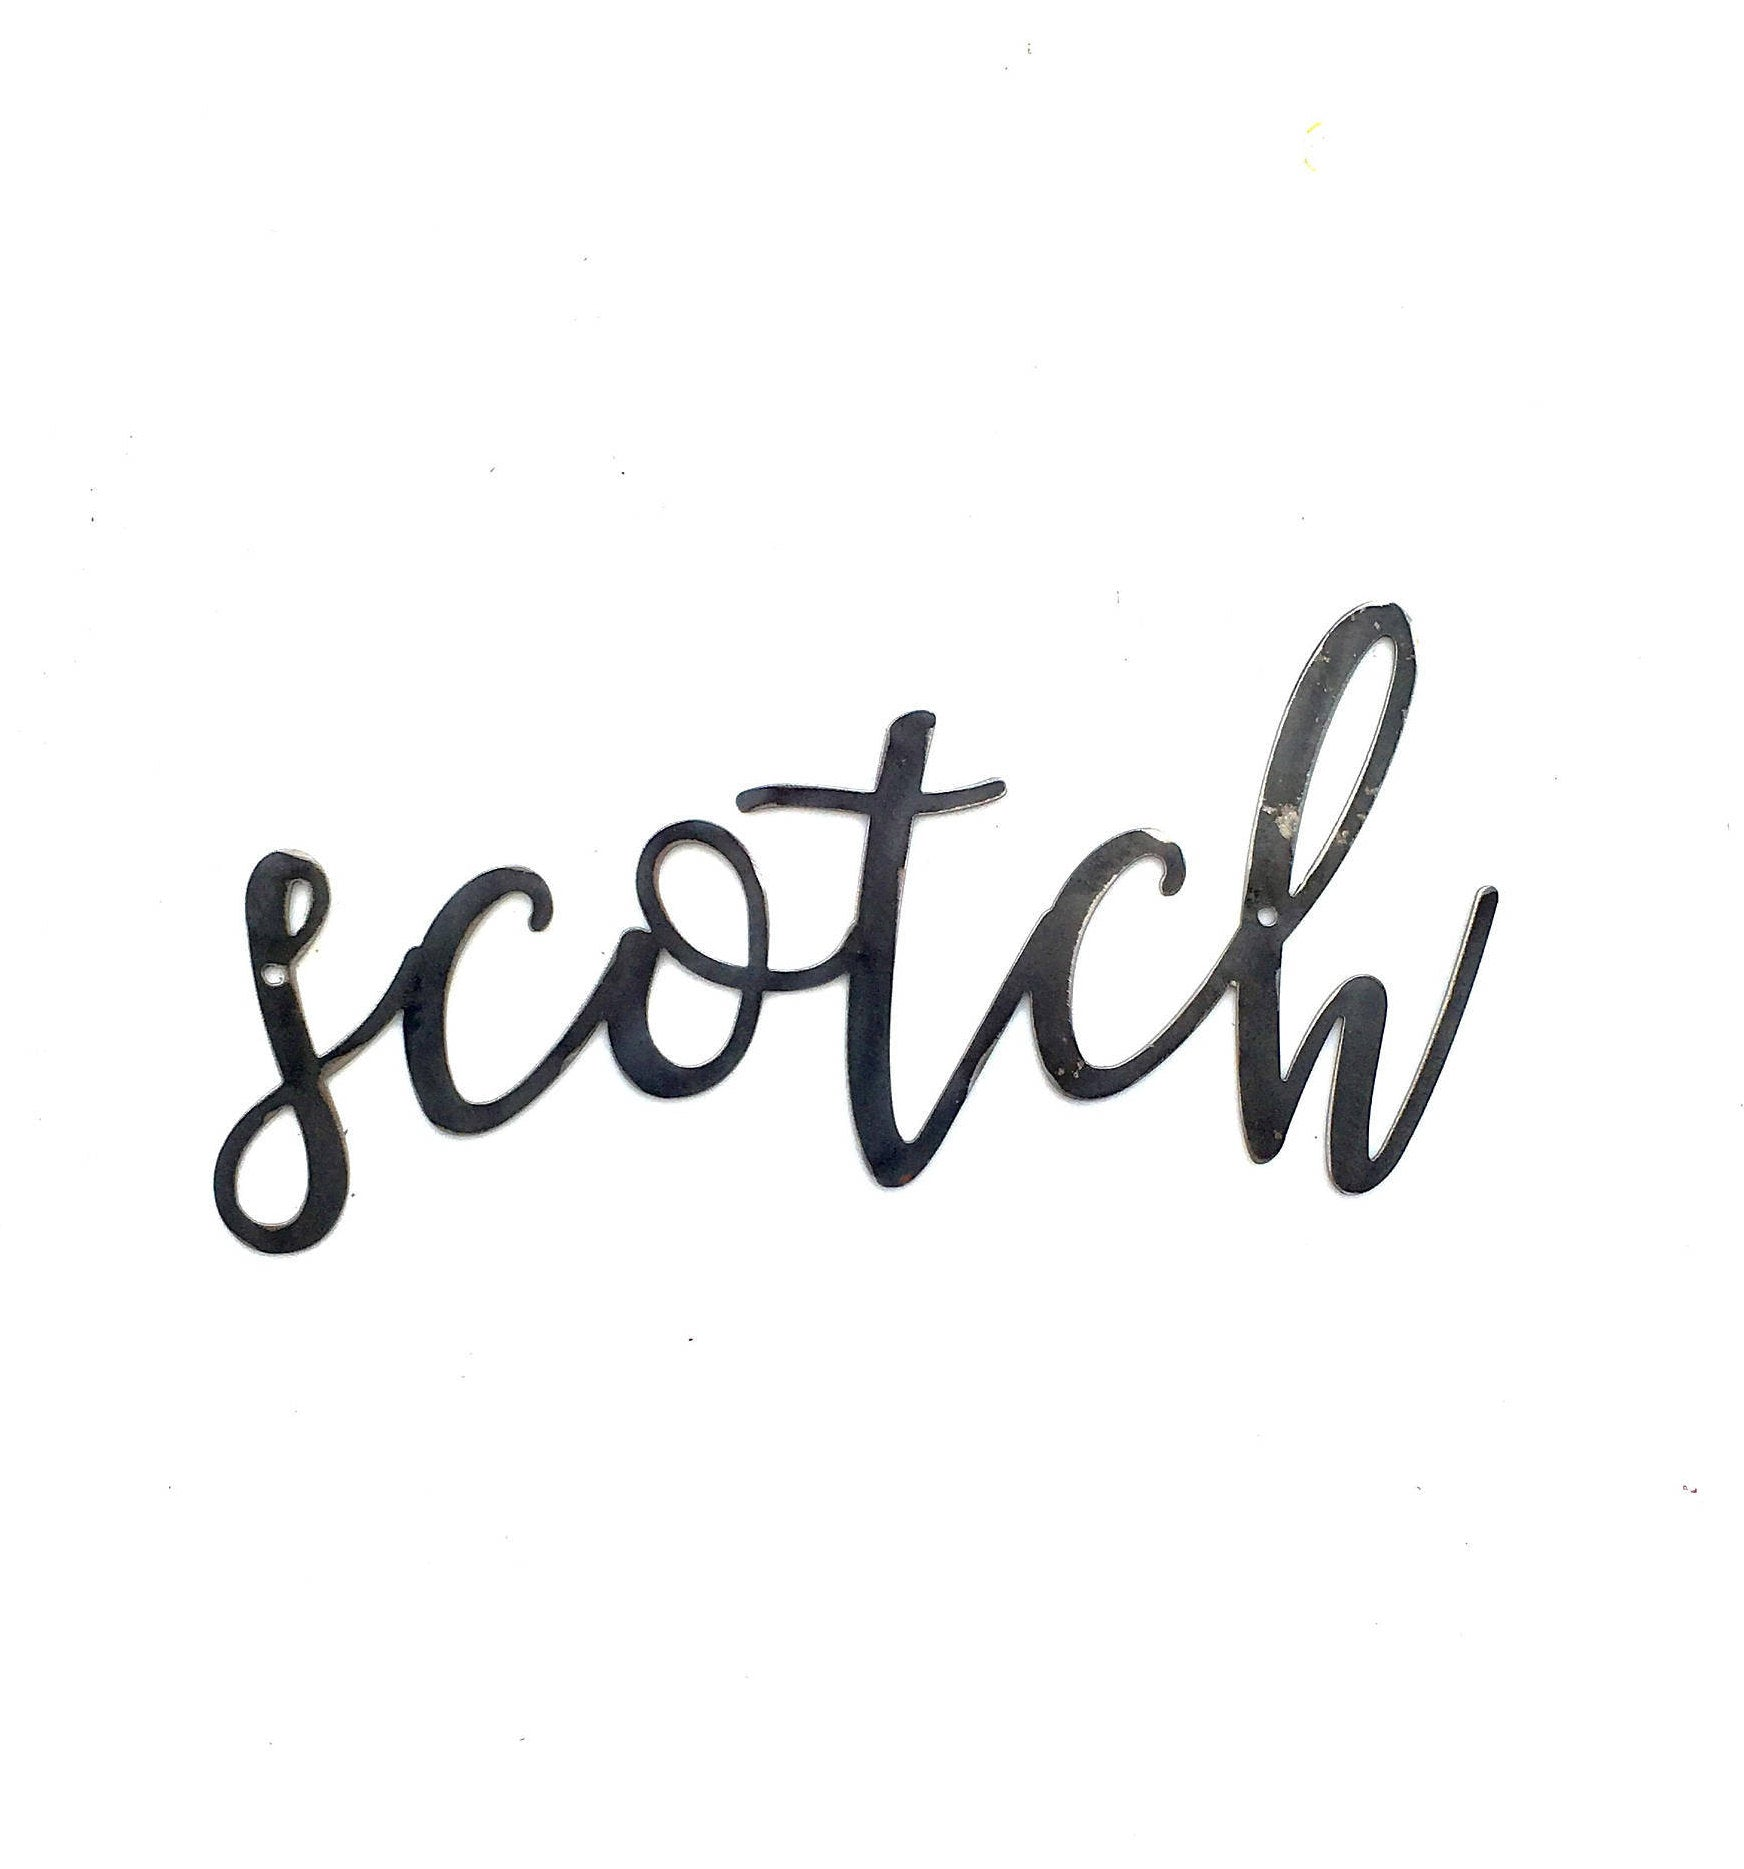 SCOTCH Script Metal Word Wall Expressions